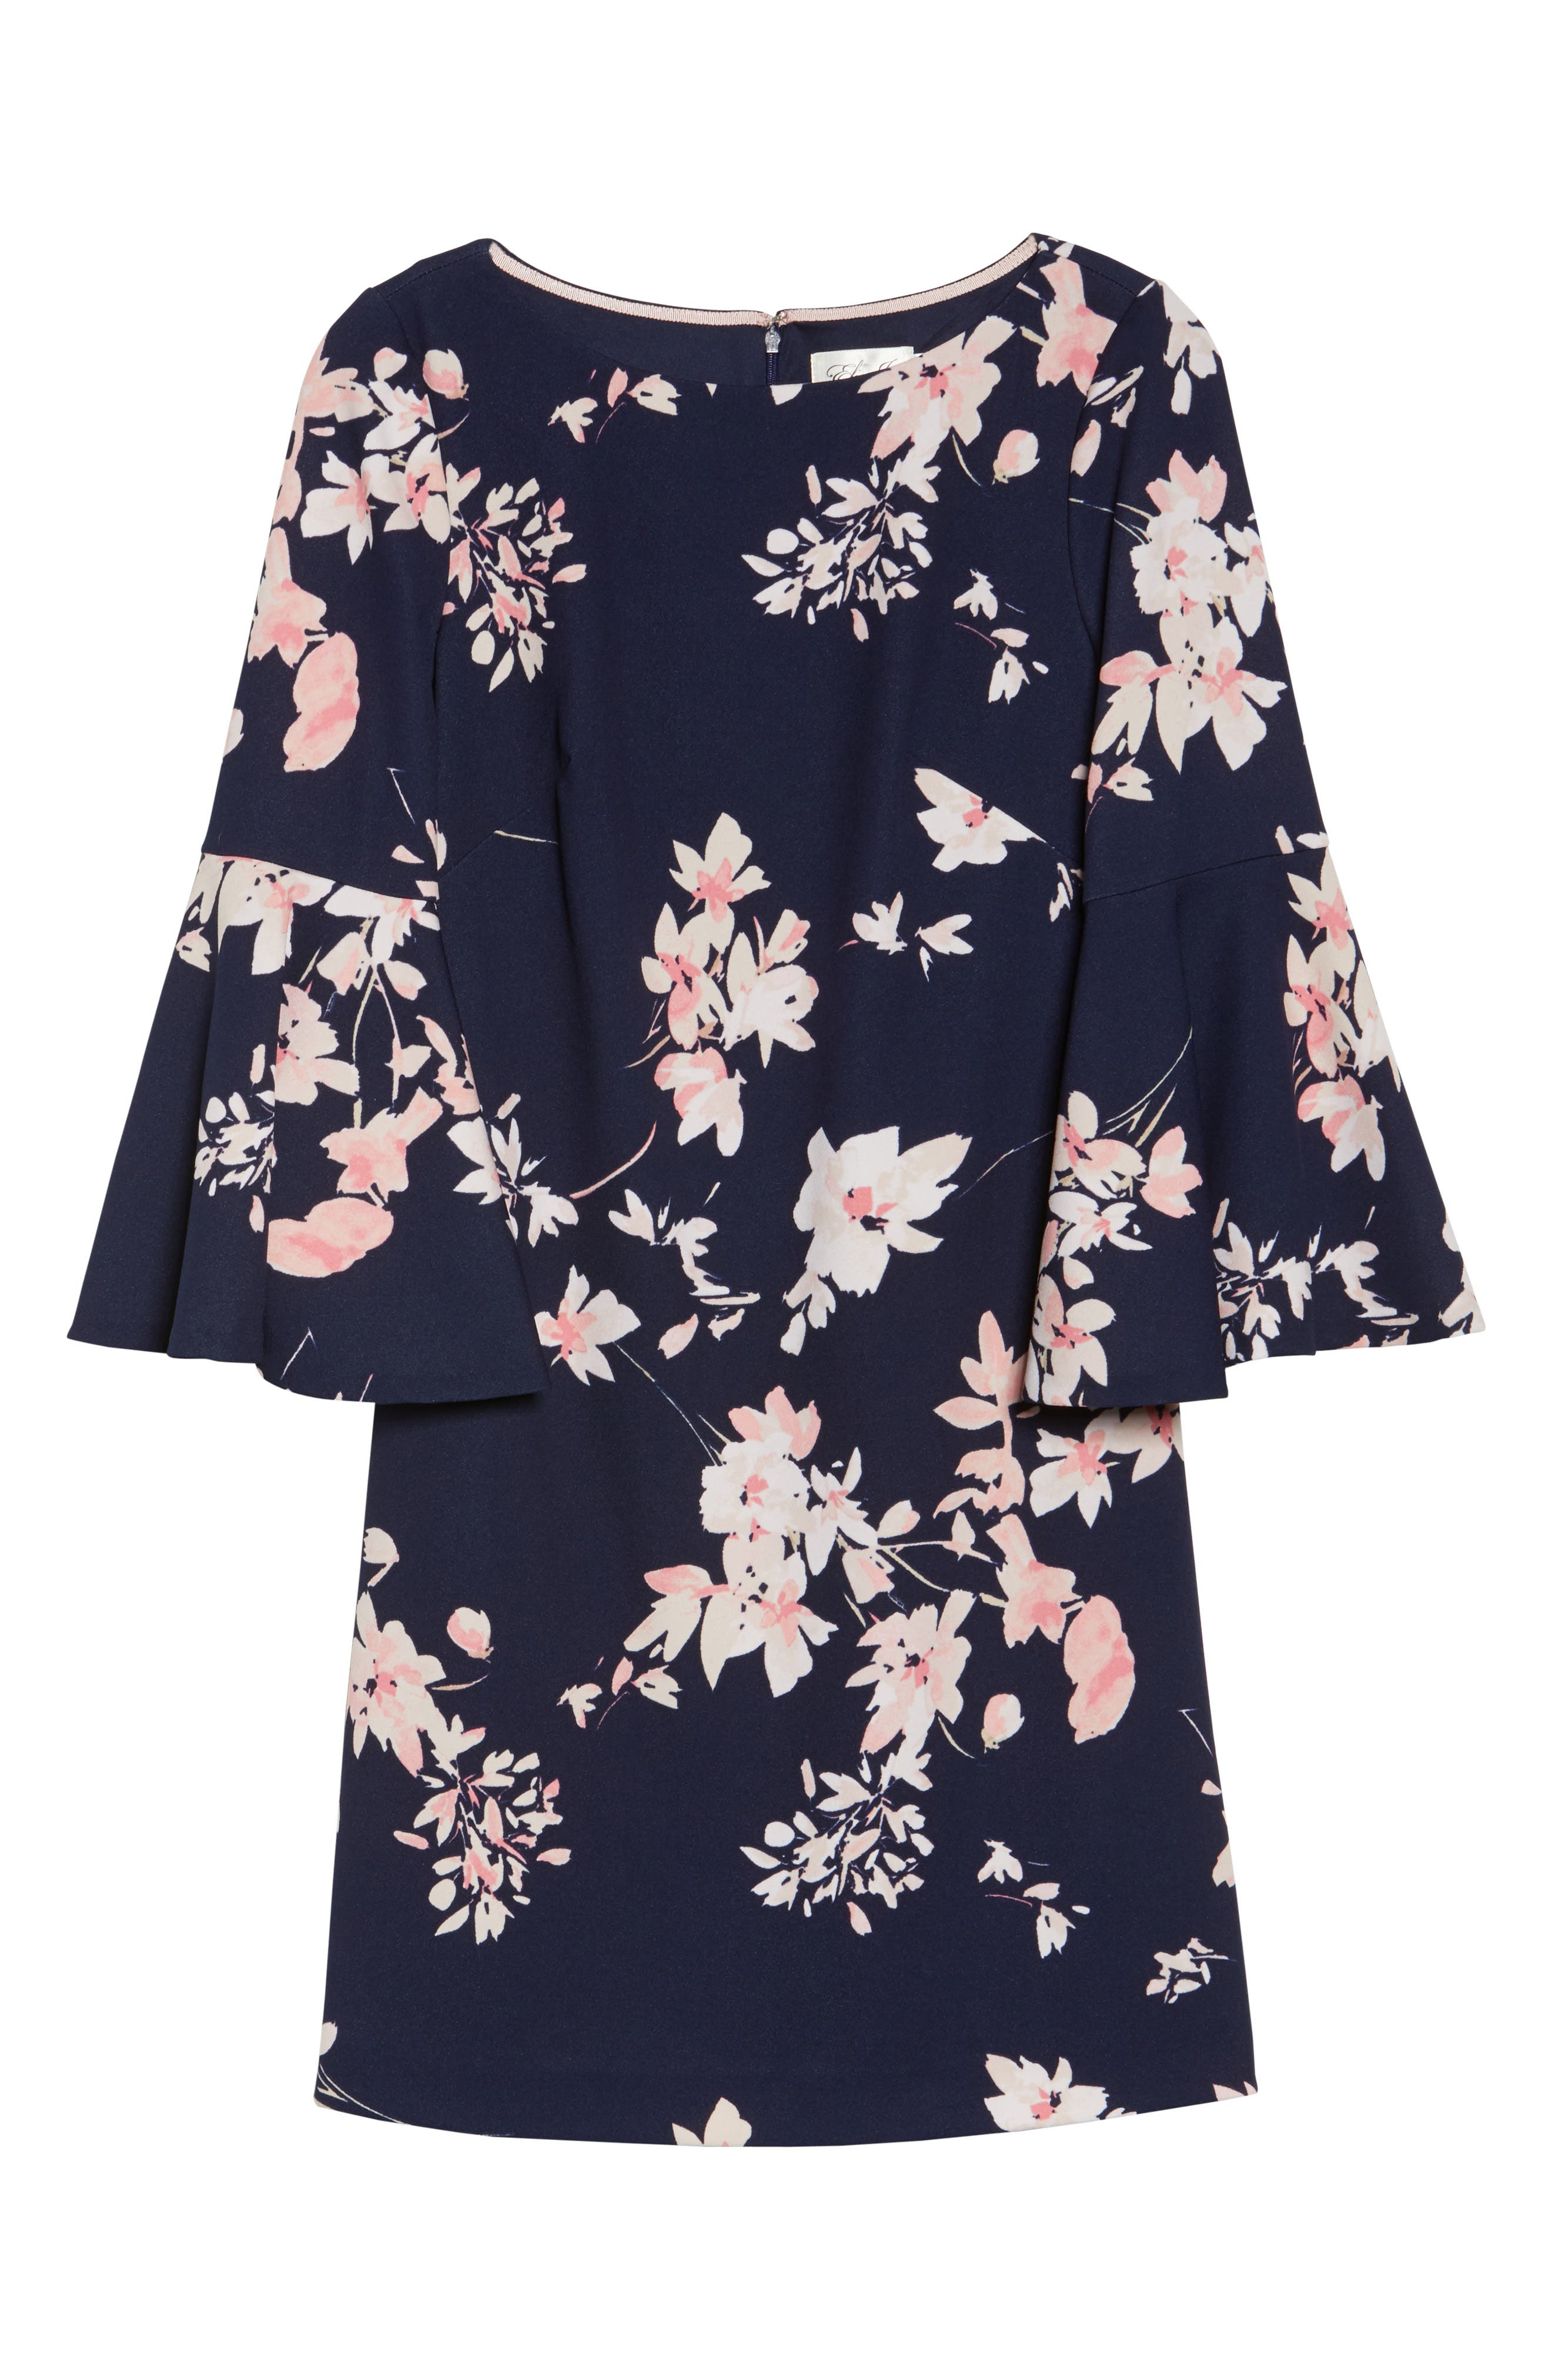 ELIZA J,                             Floral Bell Sleeve Dress,                             Alternate thumbnail 6, color,                             NAVY/PINK